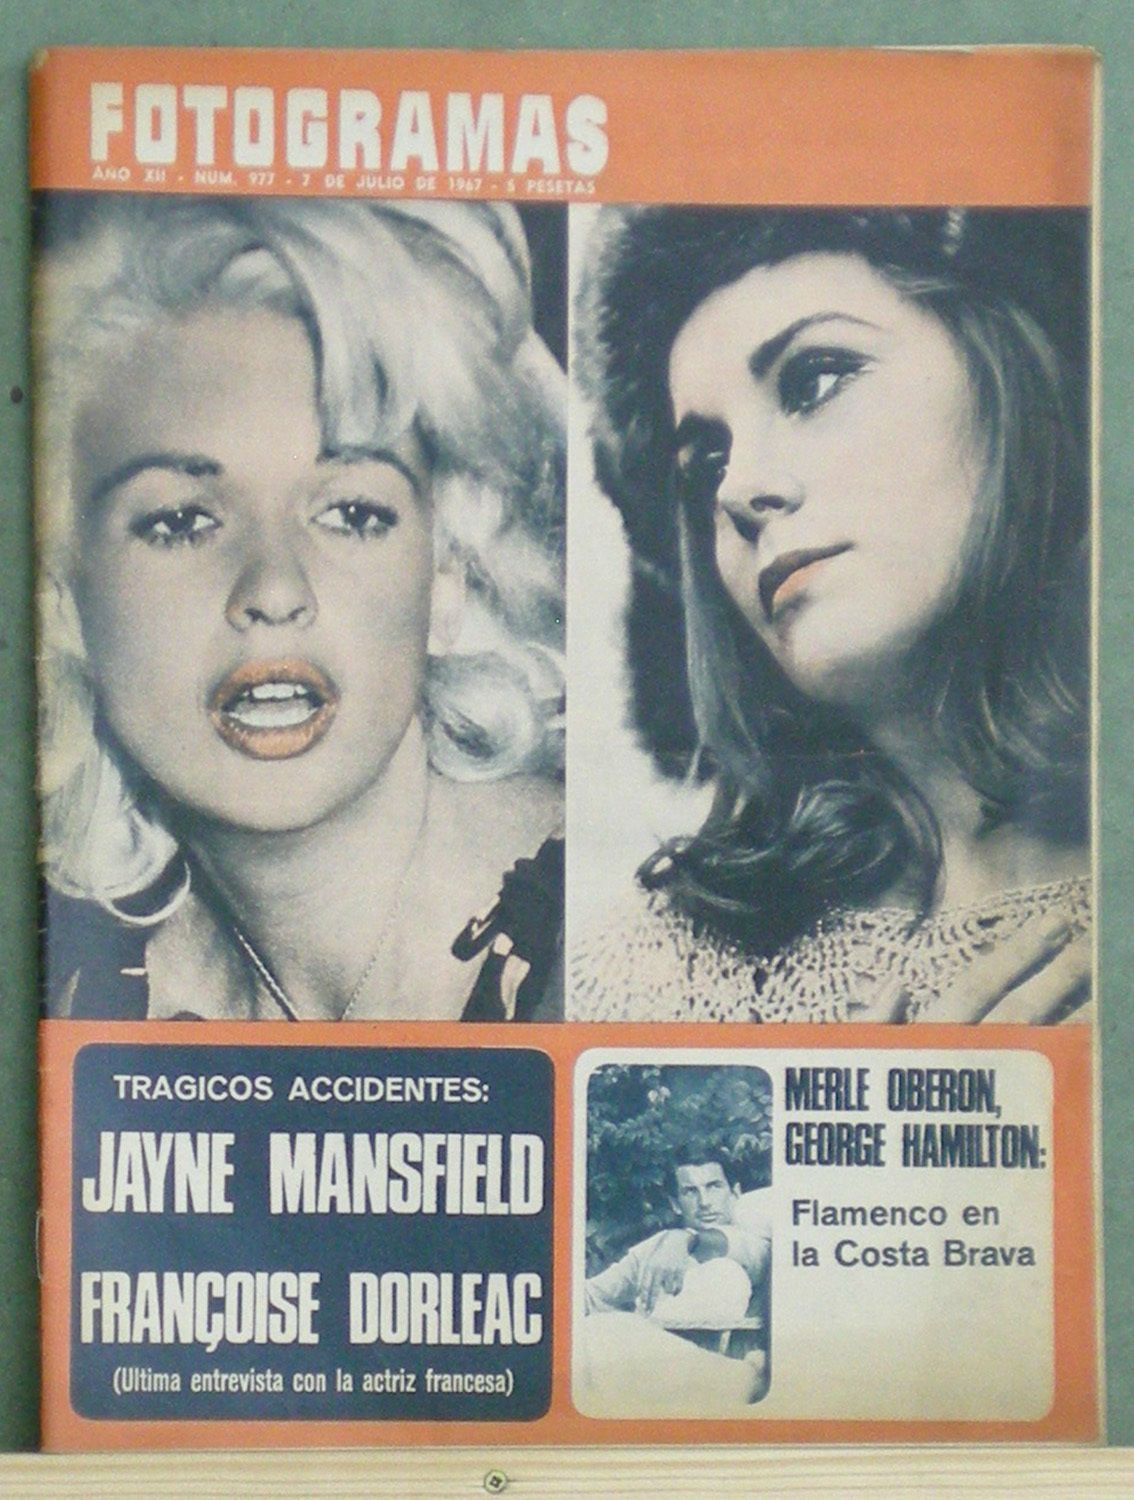 francoise dorleac accident google search late 60 39 s pinterest jayne mansfield movie. Black Bedroom Furniture Sets. Home Design Ideas